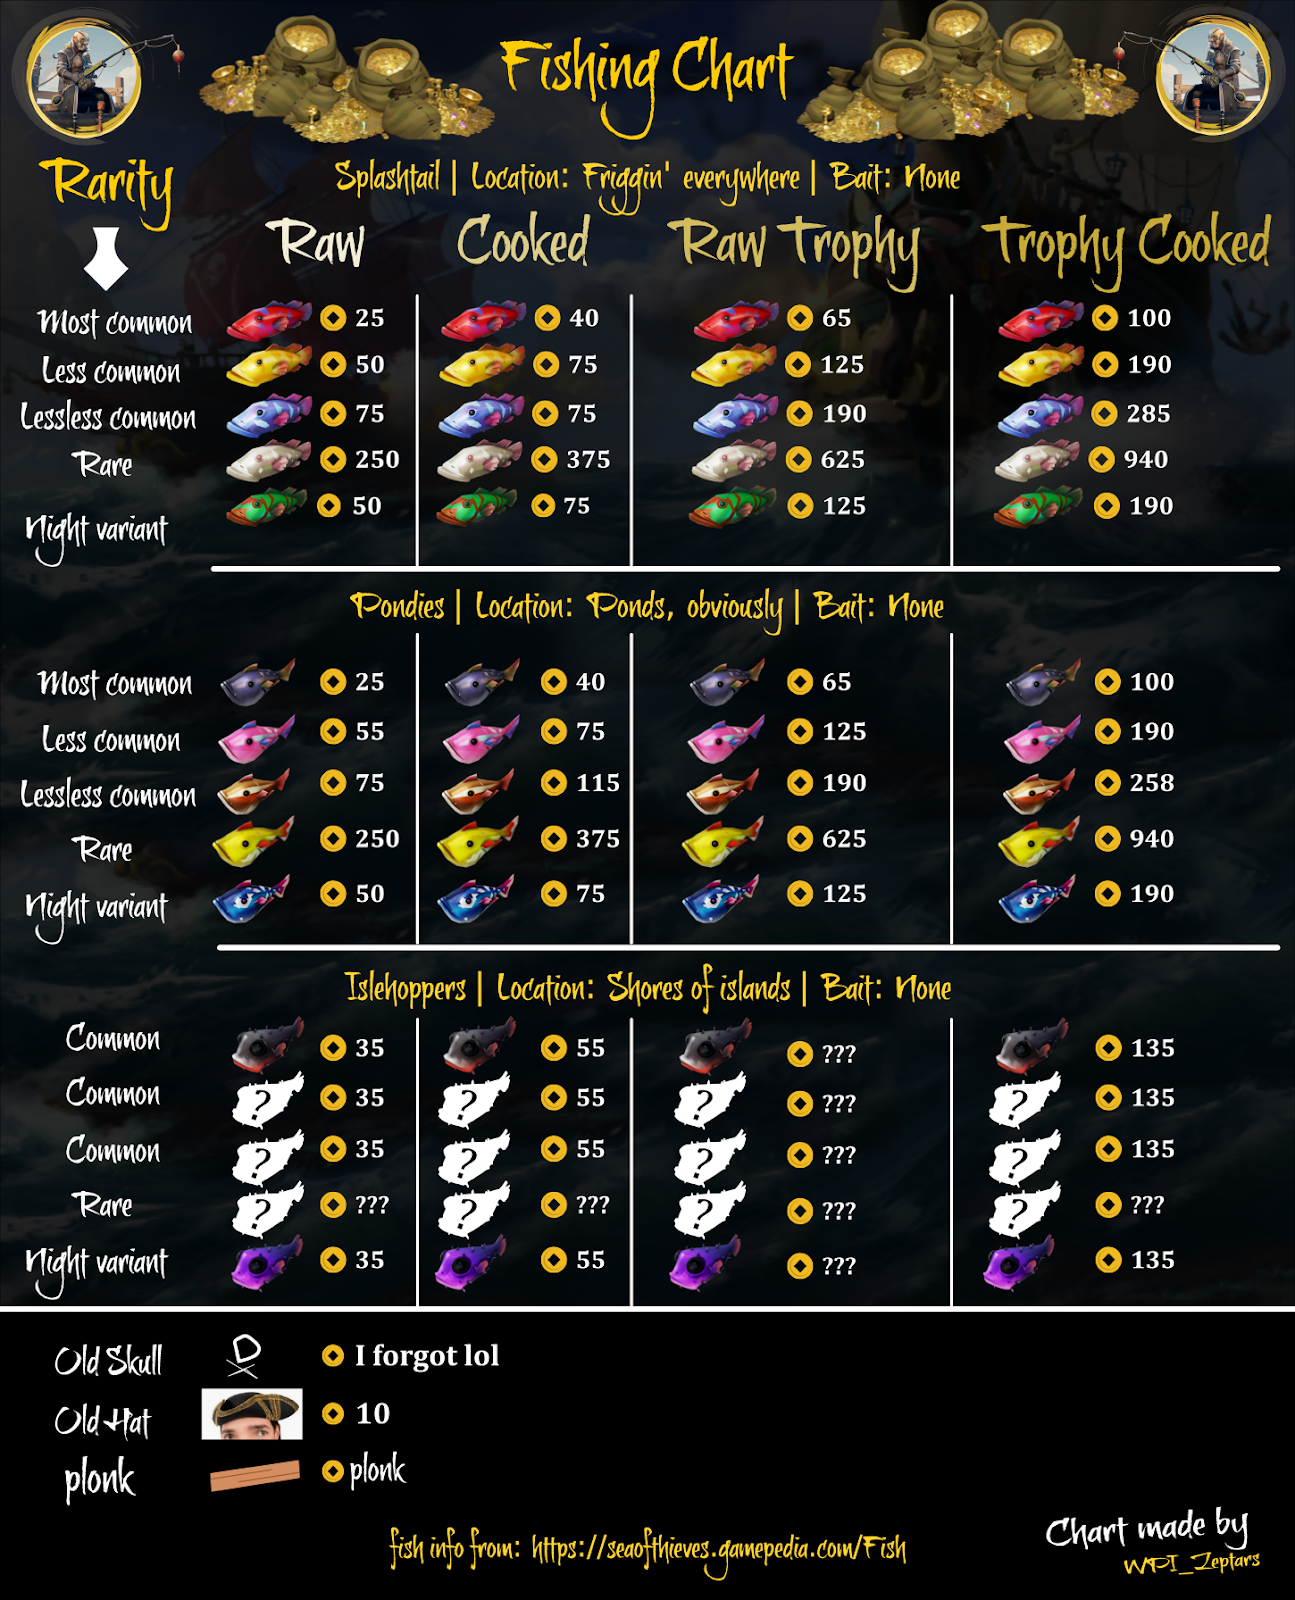 Huge collection of the sea of thieves fishing guide and charts from Reddit and other places